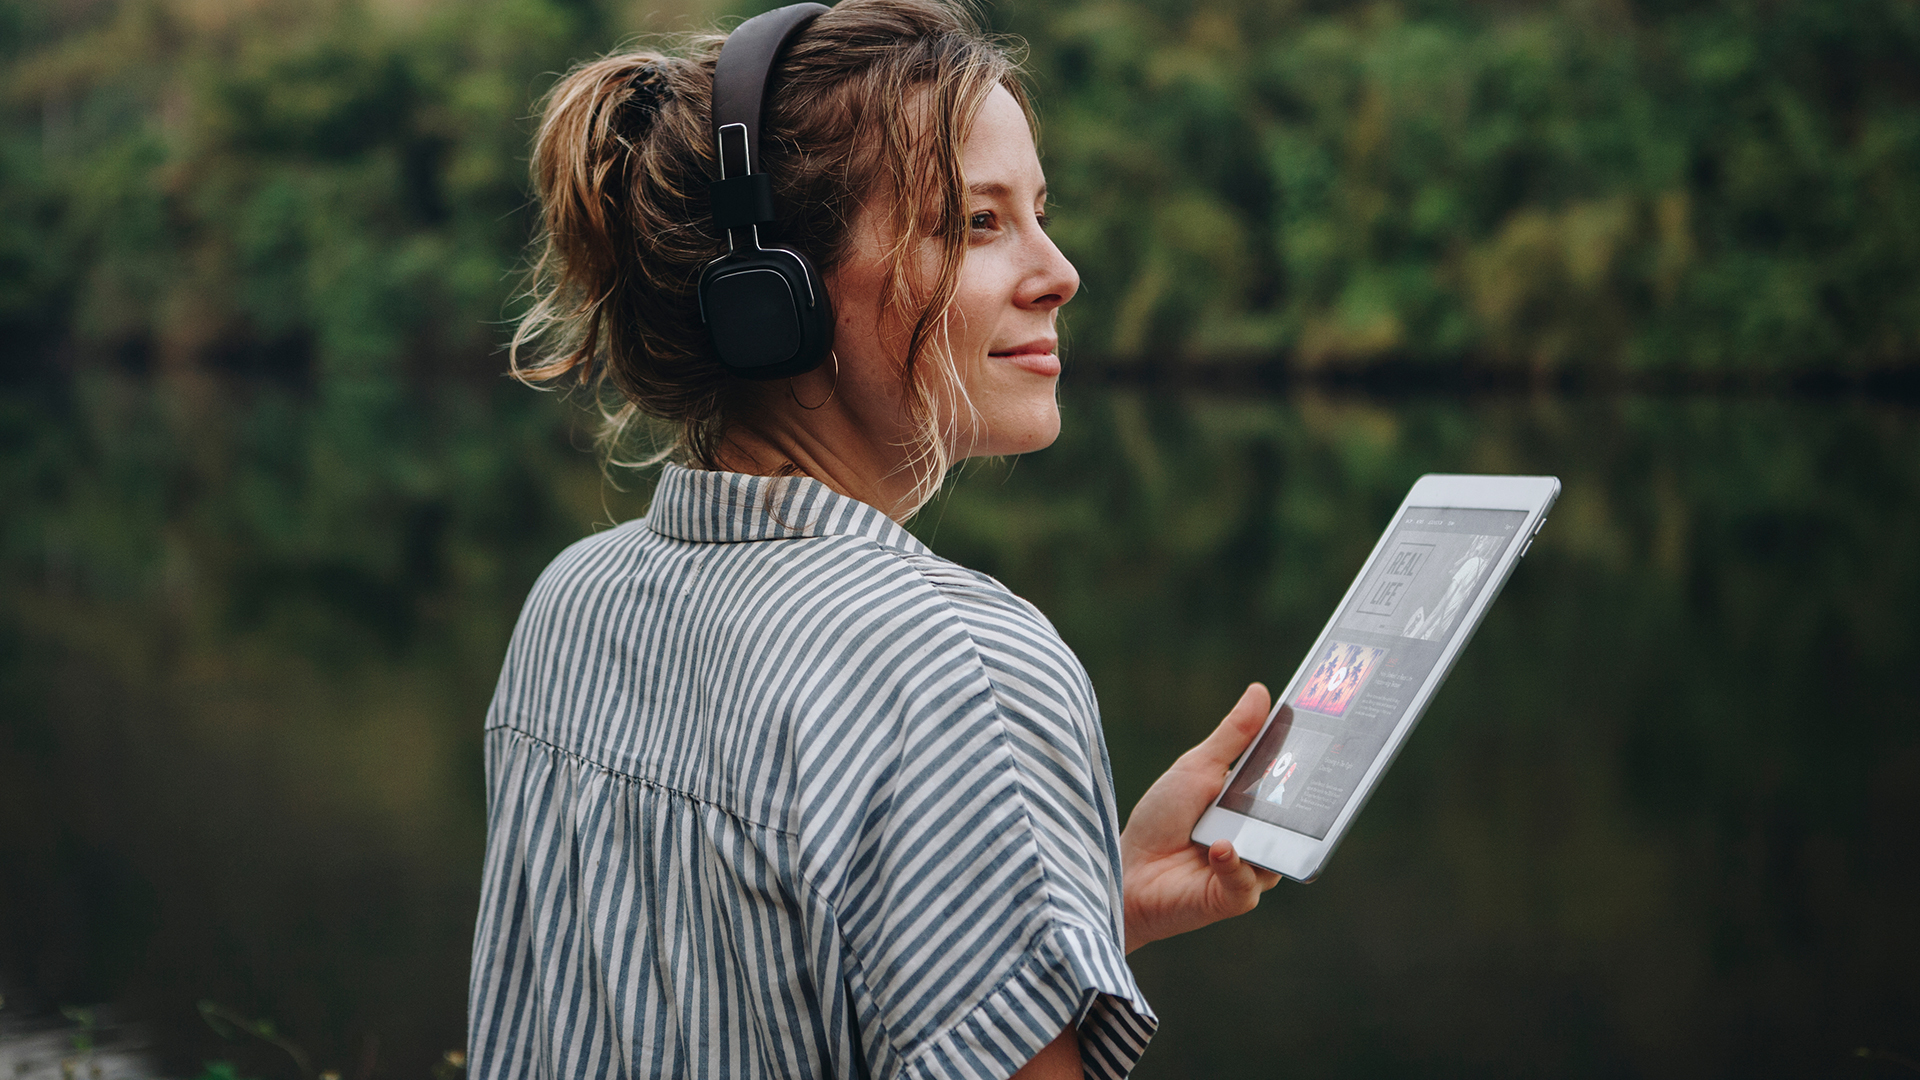 A woman looking after her mental health with digital therapy